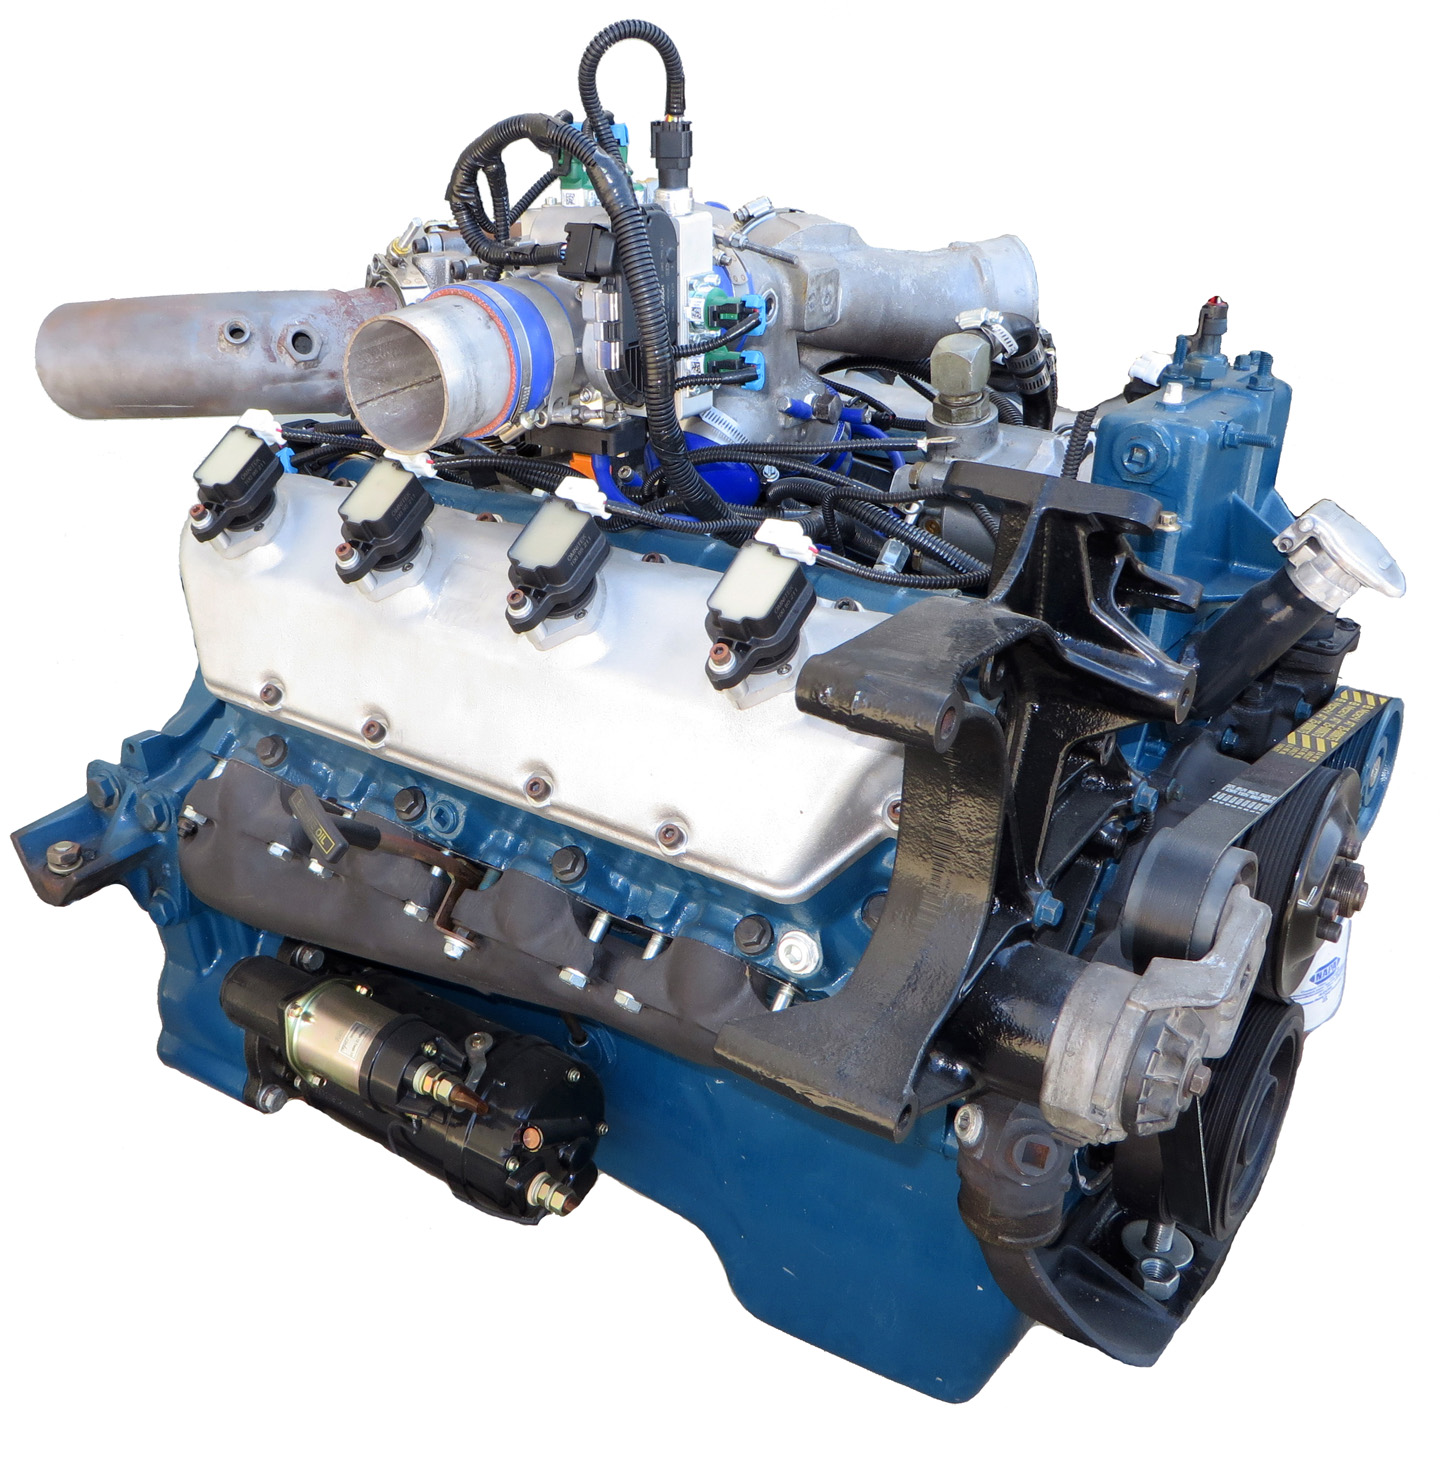 Omnitek Diesel To Natural Gas Engine Conversion DNG Engine New